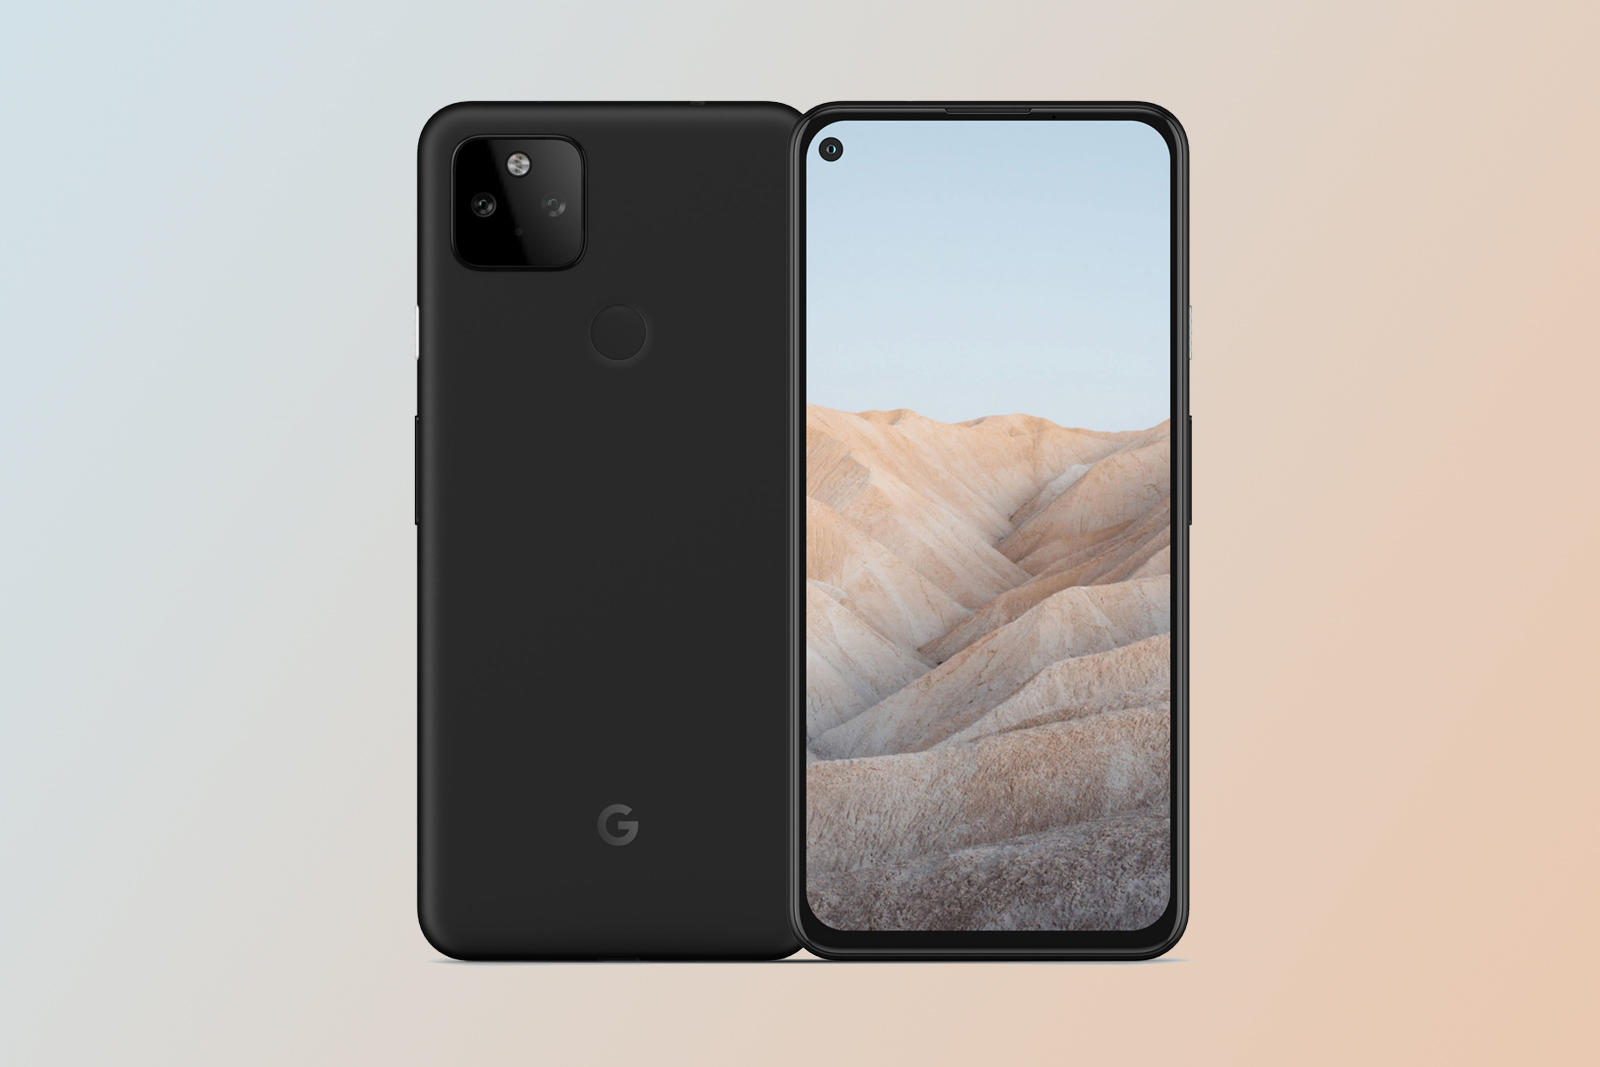 Google Pixel 5a 5G to be powered with Snapdragon 750G processor, says leaks